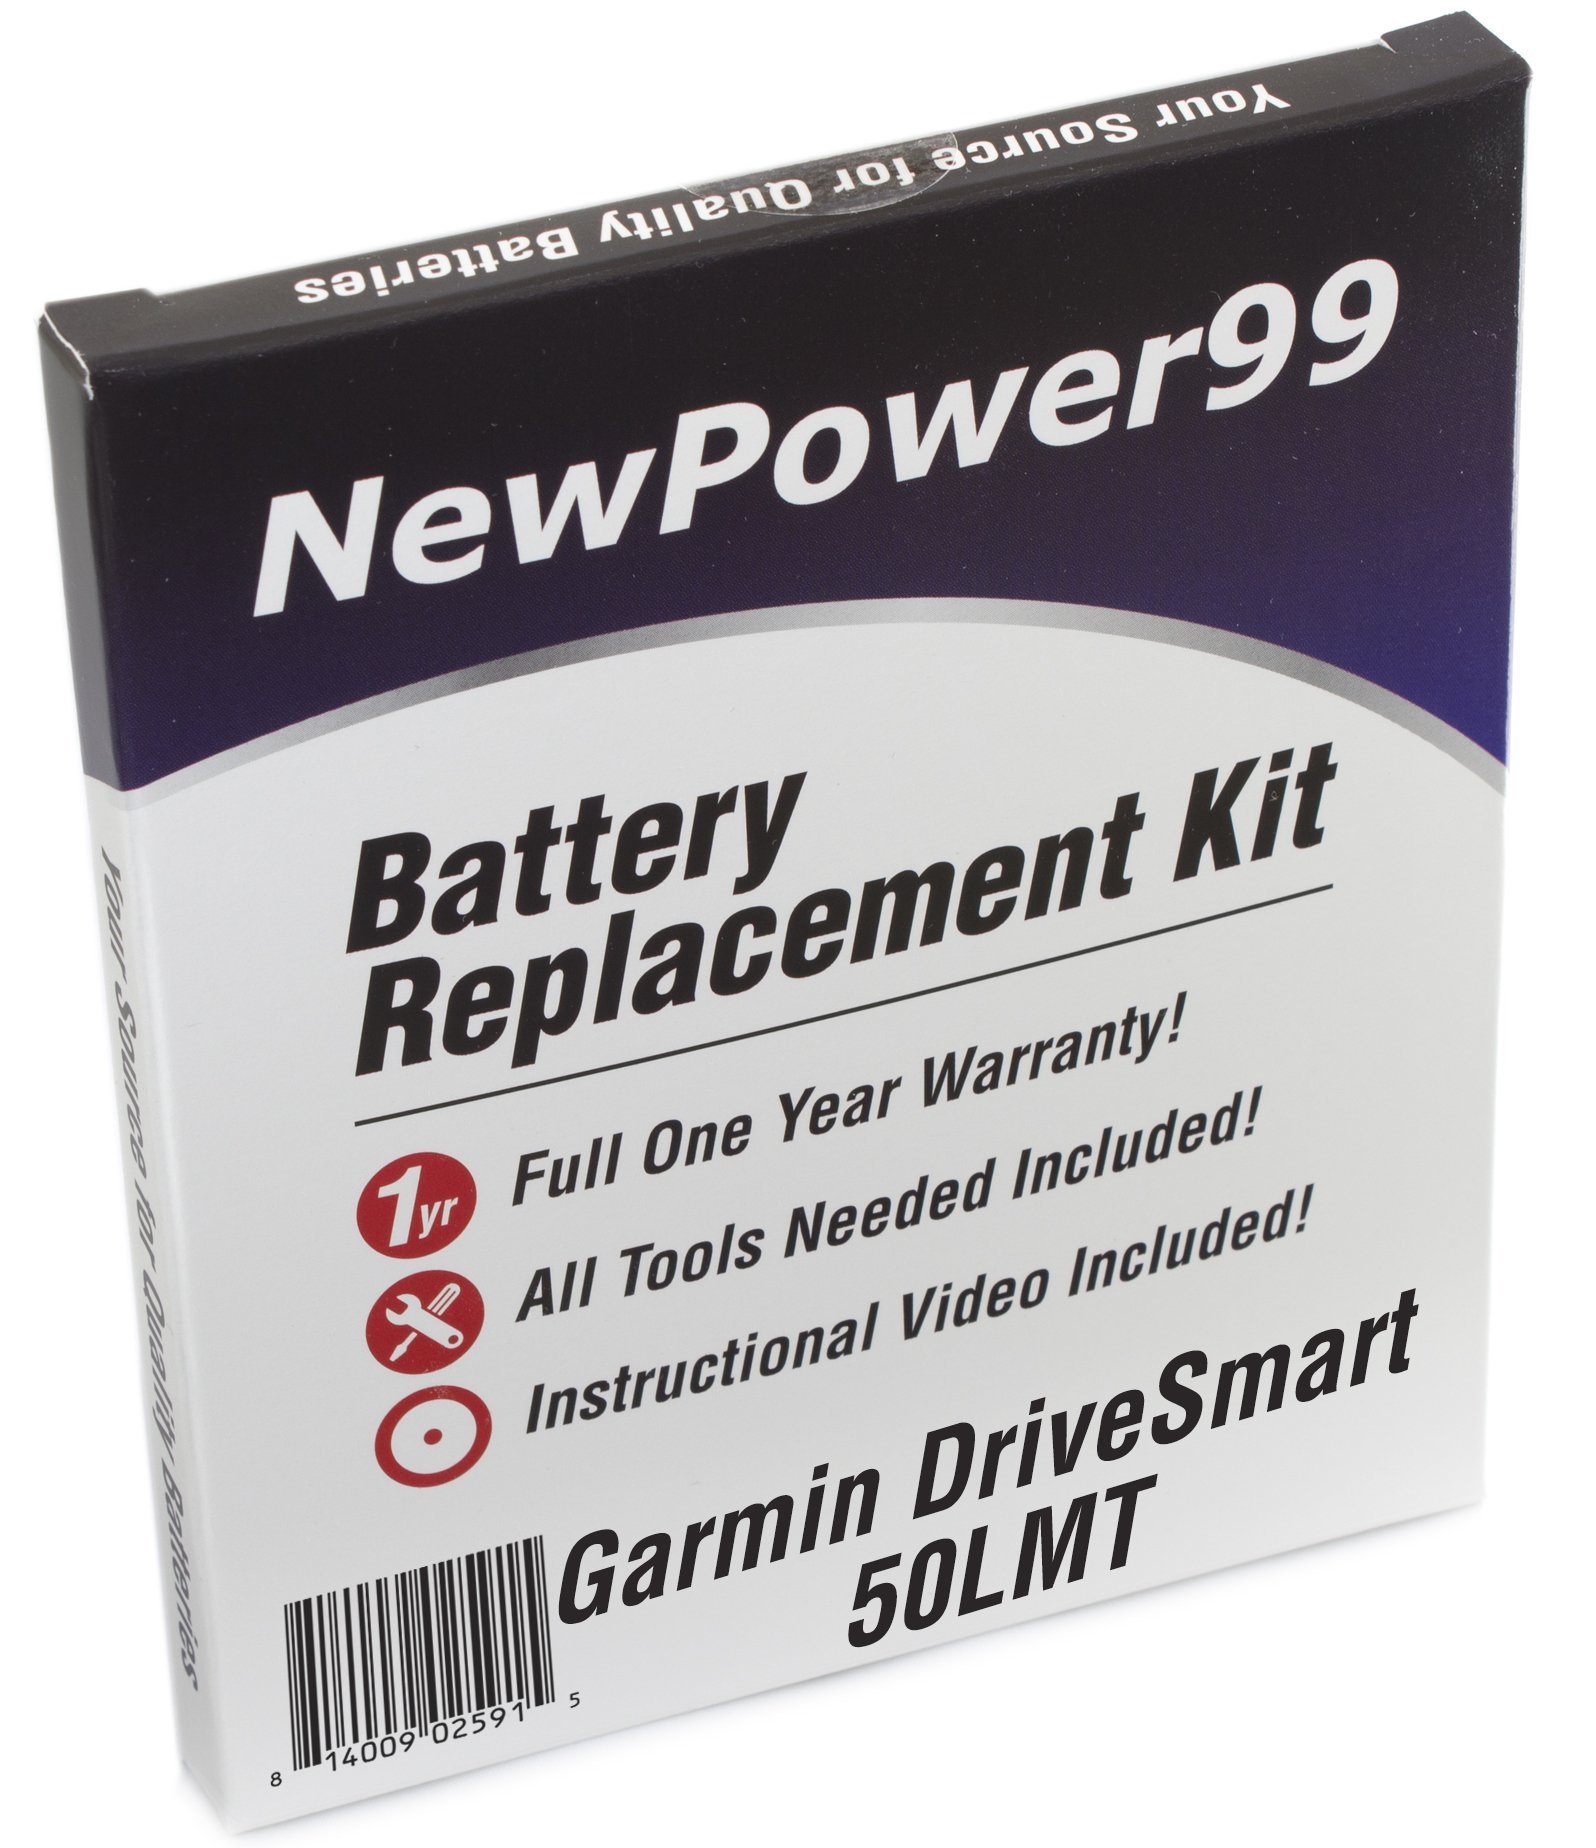 NewPower99 Battery Replacement Kit with Battery, Video Instructions and Tools for Garmin DriveSmart 50LMT by NewPower99